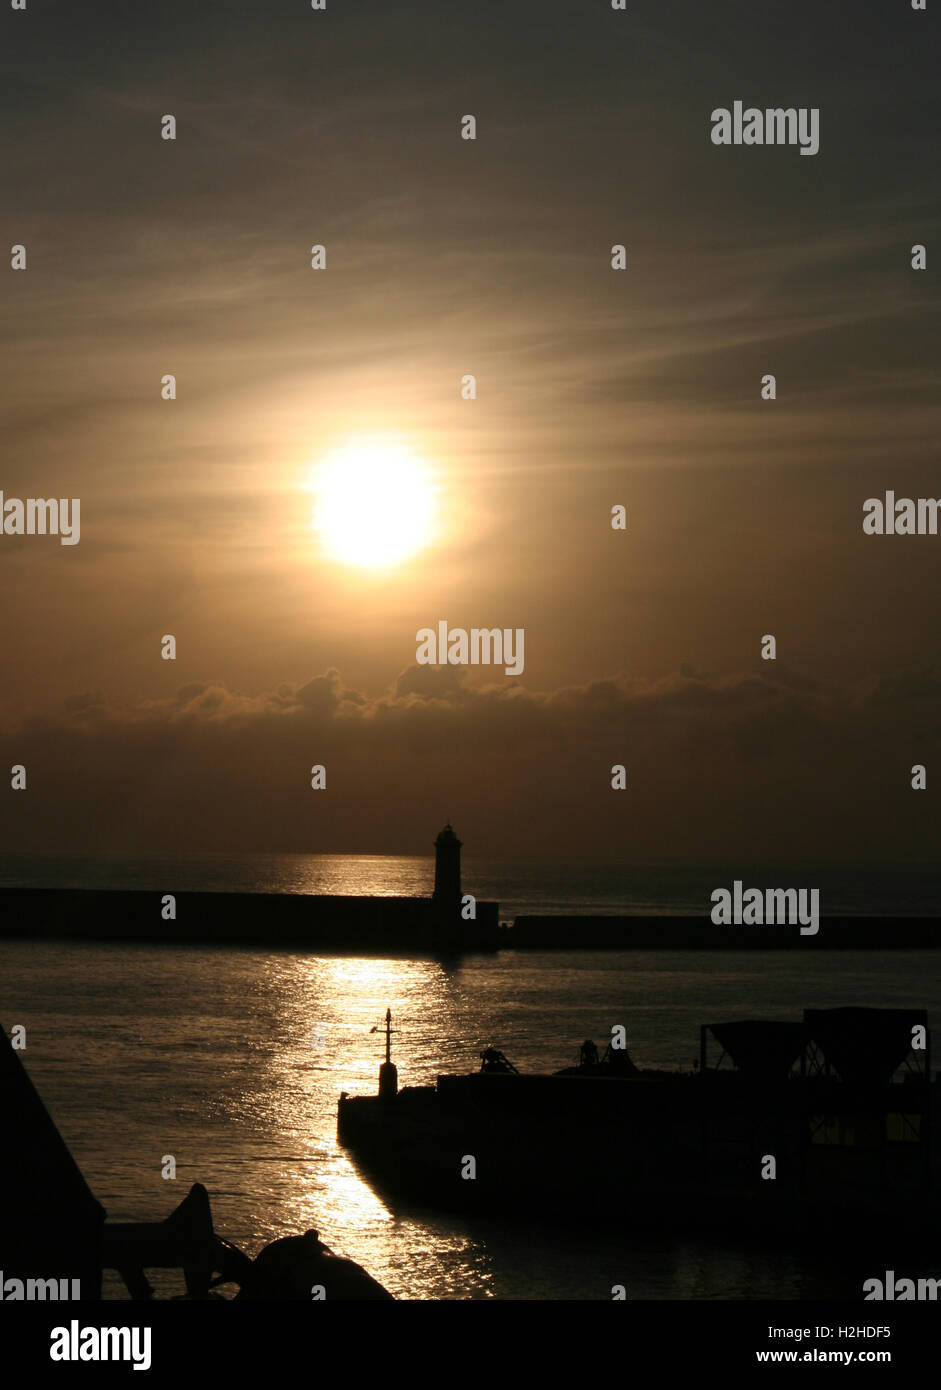 Sunset and silhouette in Livorno - Stock Image